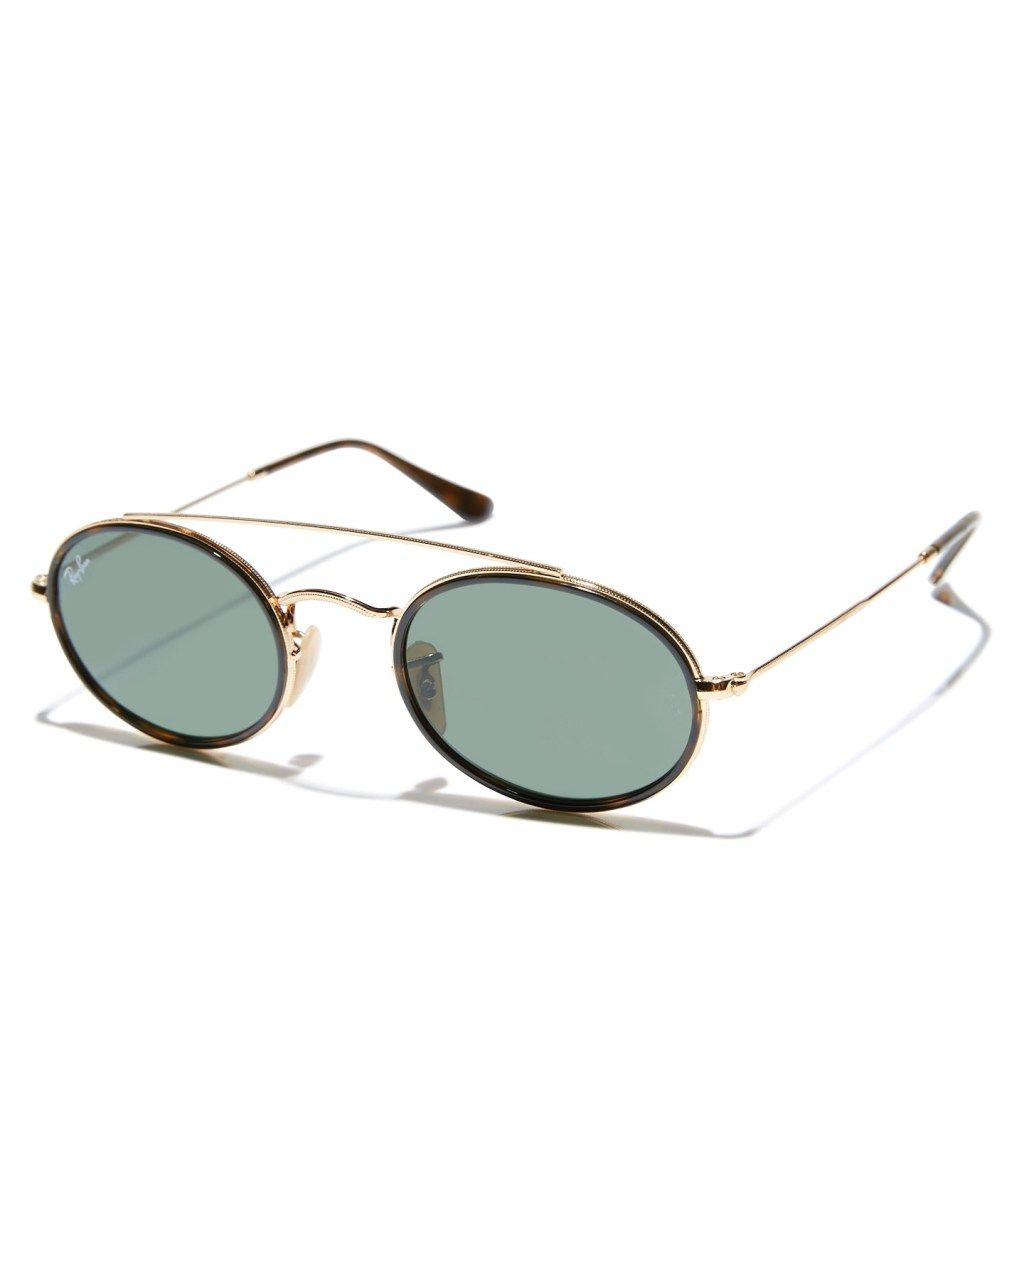 18363751b Ray-Ban Oval Double Bridge Sunglasses Gold Green Mens sunglasses Size